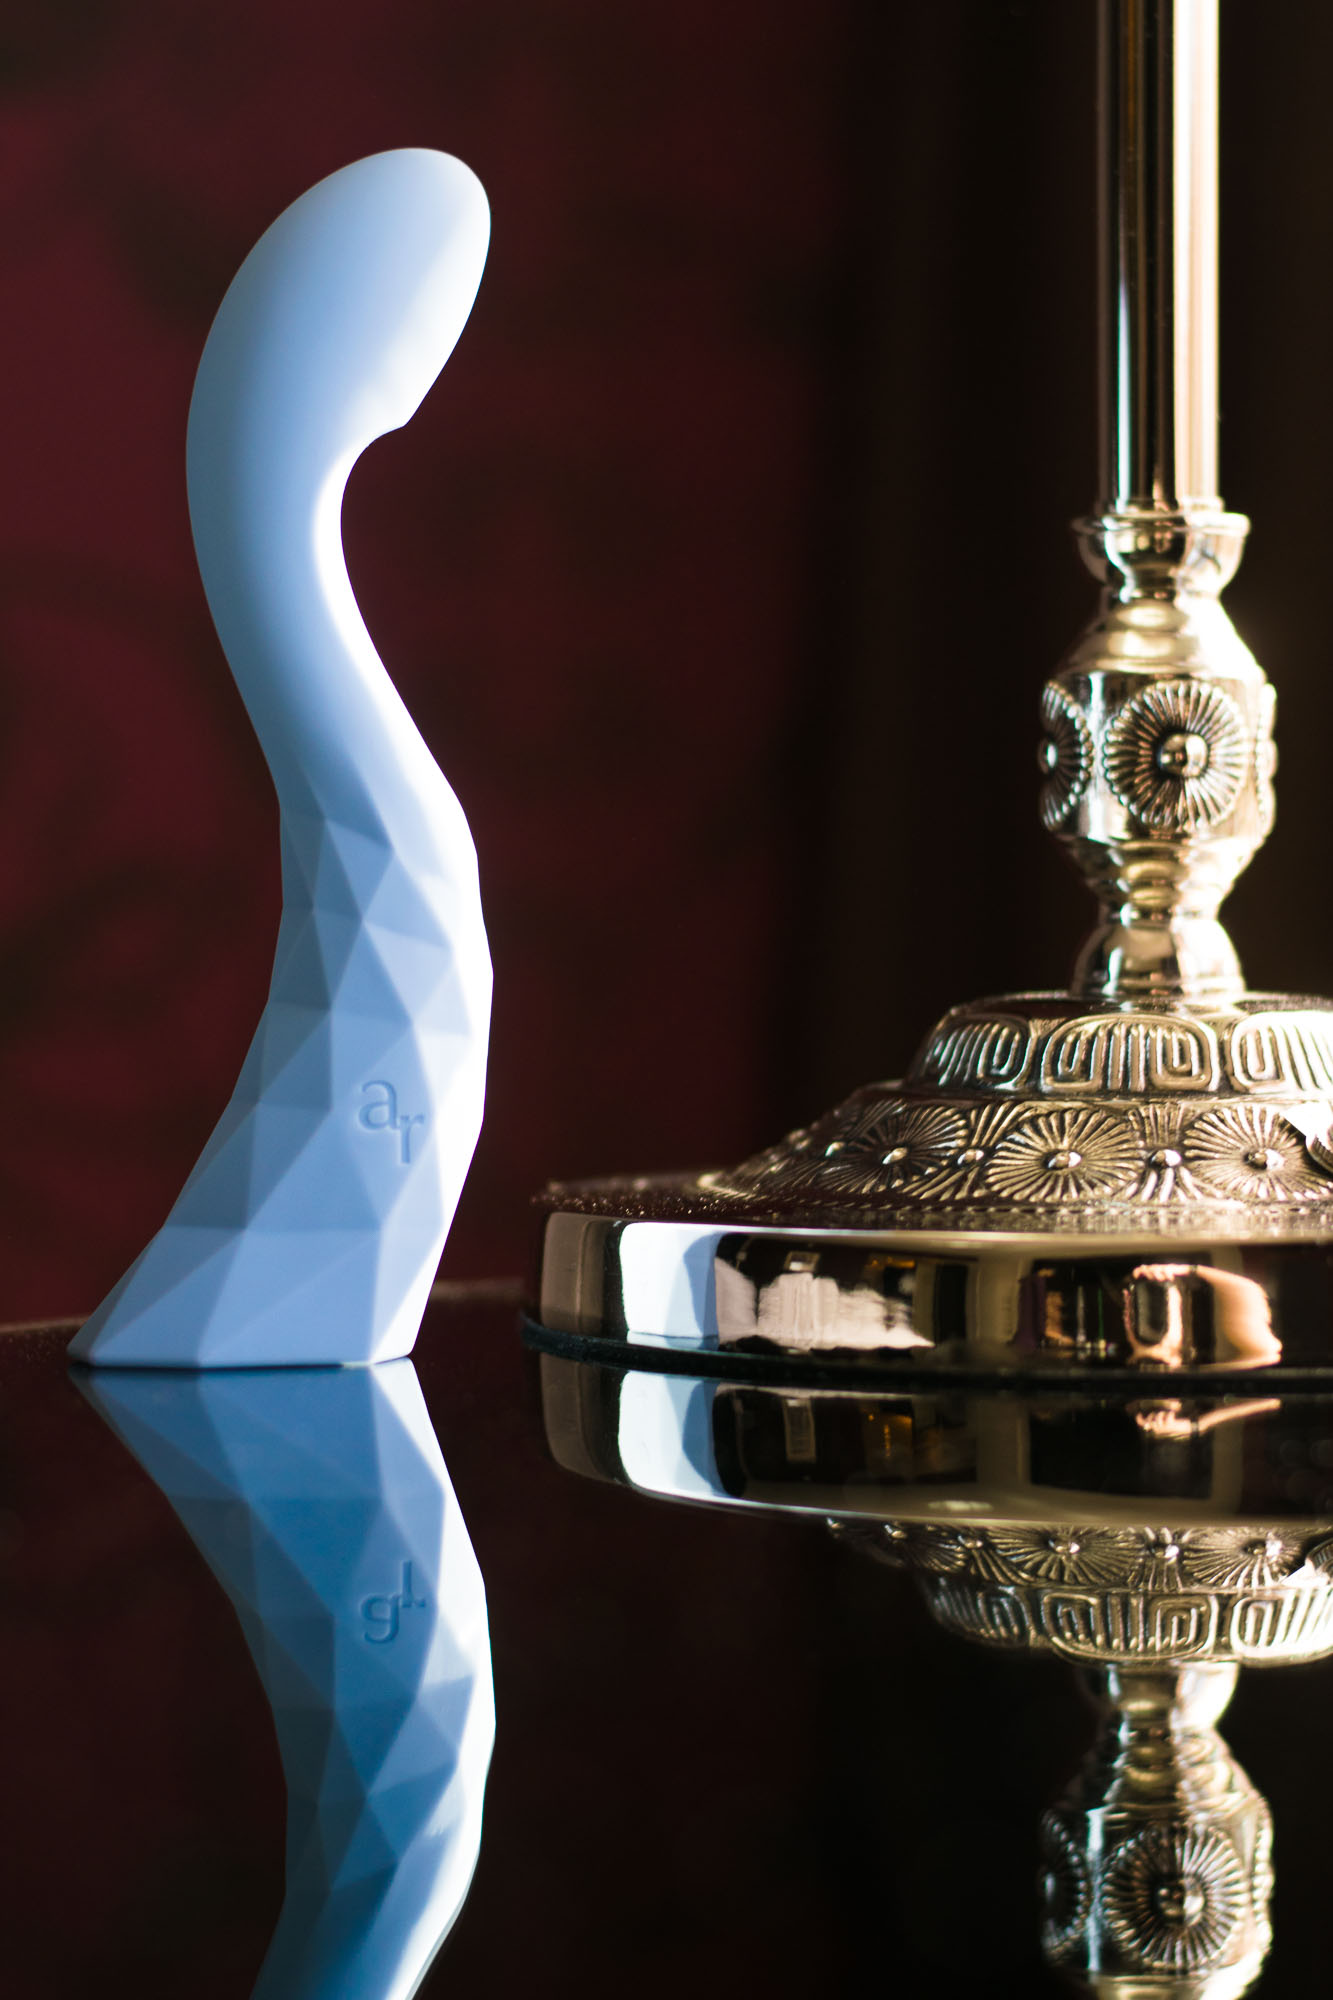 L'Amourose Prism V rechargeable G-spot vibrator standing up on a reflective table, next to an ornate golden lamp.